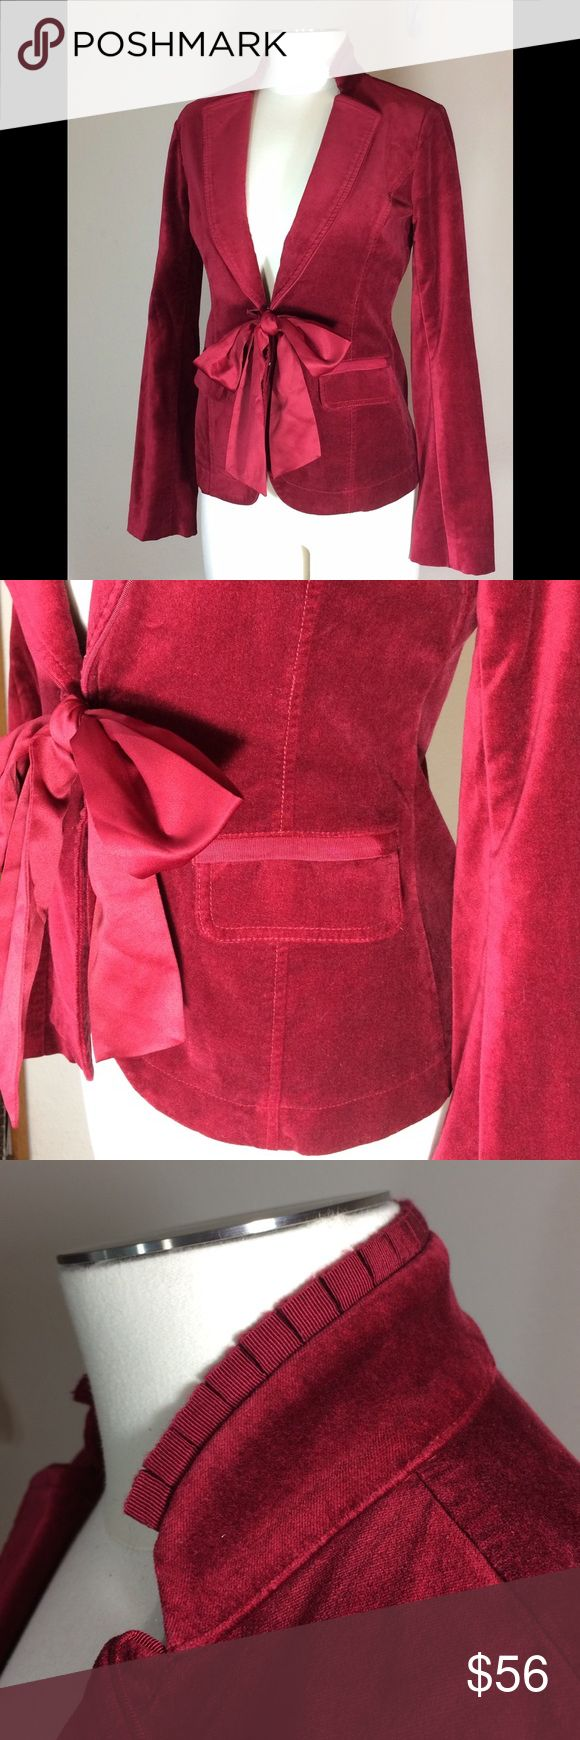 WHBM ruby red velvet jacket blazer OMG, I wish this fit me! It's perfect for the holidays. Velvet with beautiful details. Hook and eye front closer with optional satiny tie. Size 2. Non-smoking home. White House Black Market Jackets & Coats Blazers